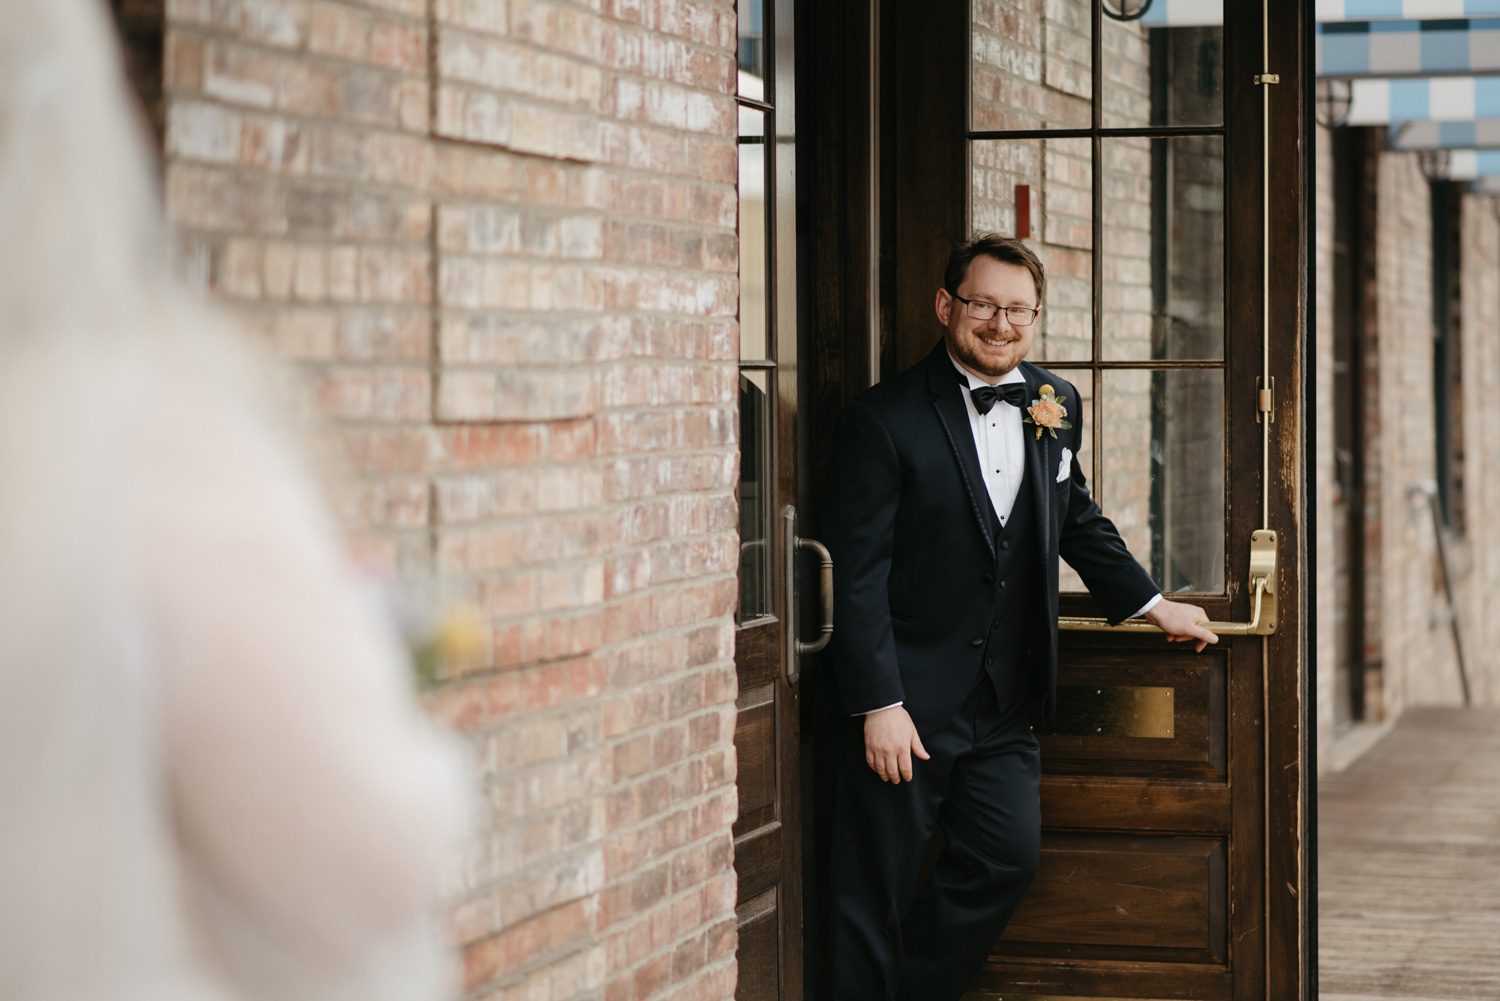 Groom coming out of venue for first look with surprised face